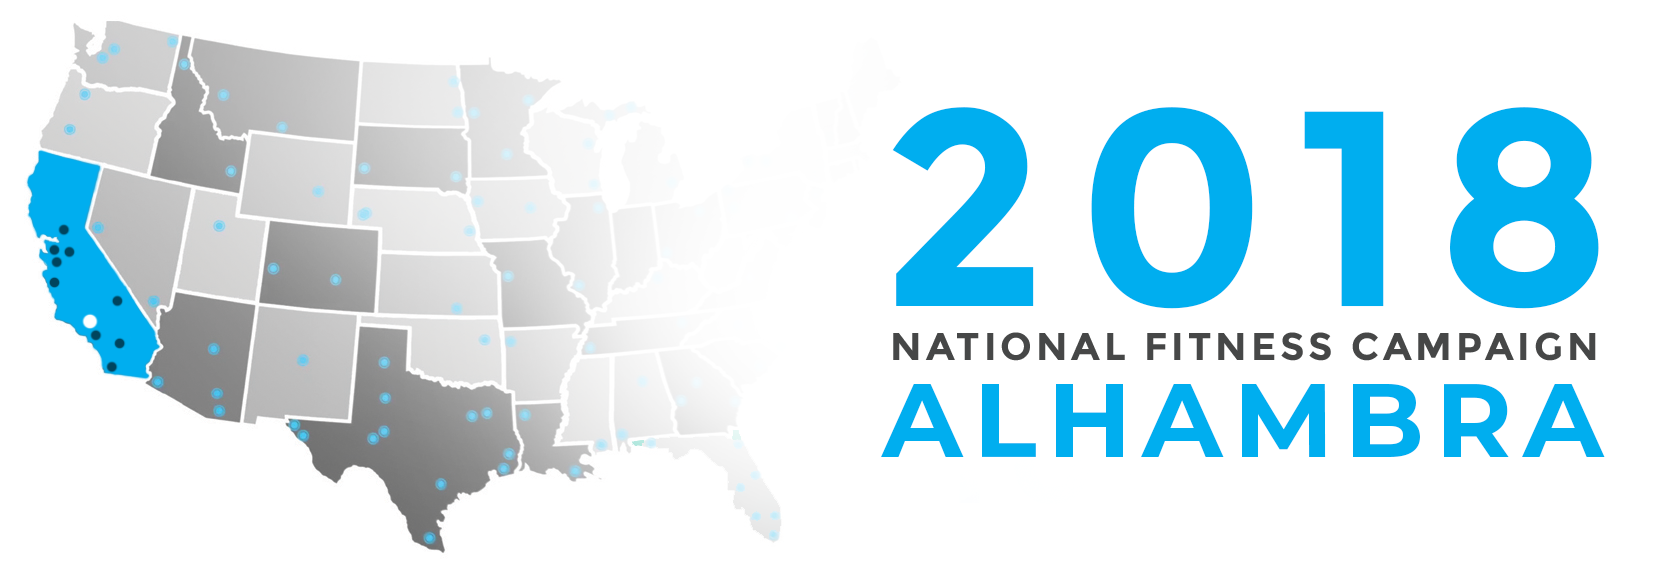 2018 Campaign Logo Alhambra.png